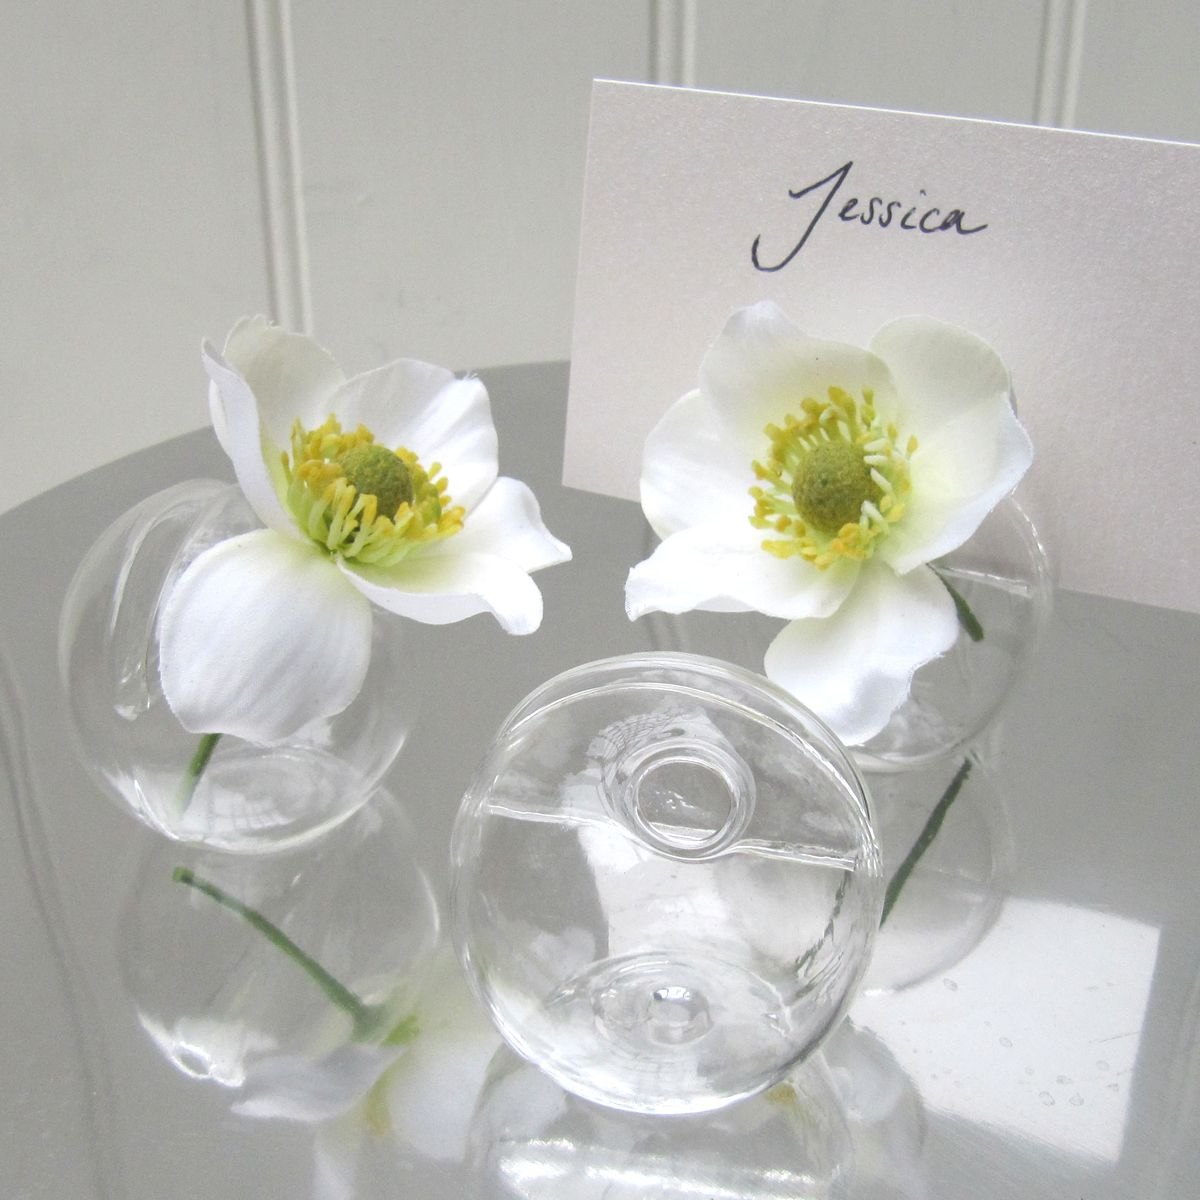 Wedding Planner Names Ideas: Unique Place Card Holder With Flower